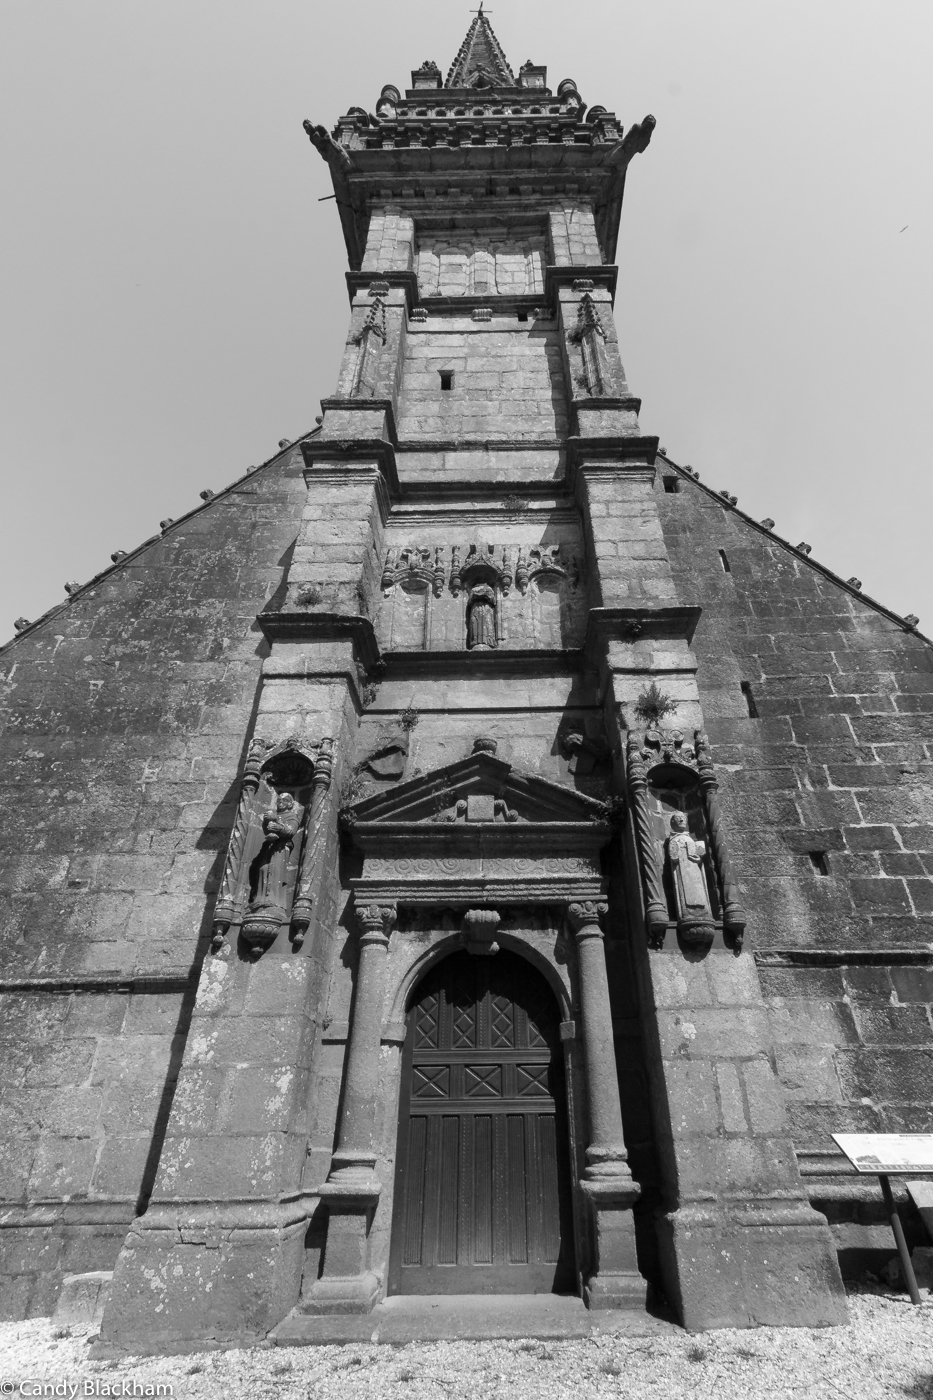 The Bell Tower of the Church of St Yves, La Roche-Maurice